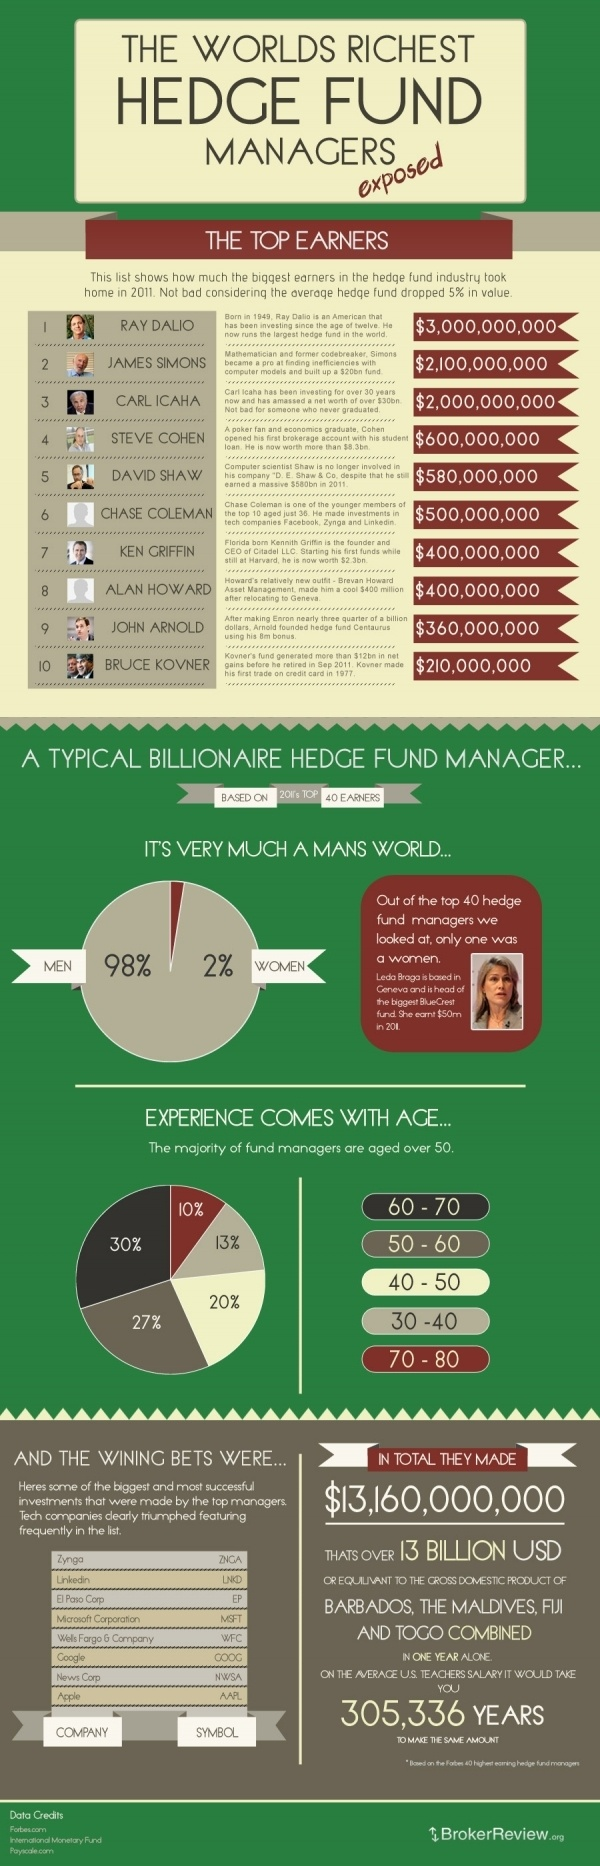 #Infographic - The Worlds Richest Hedge Fund Managers Exposed